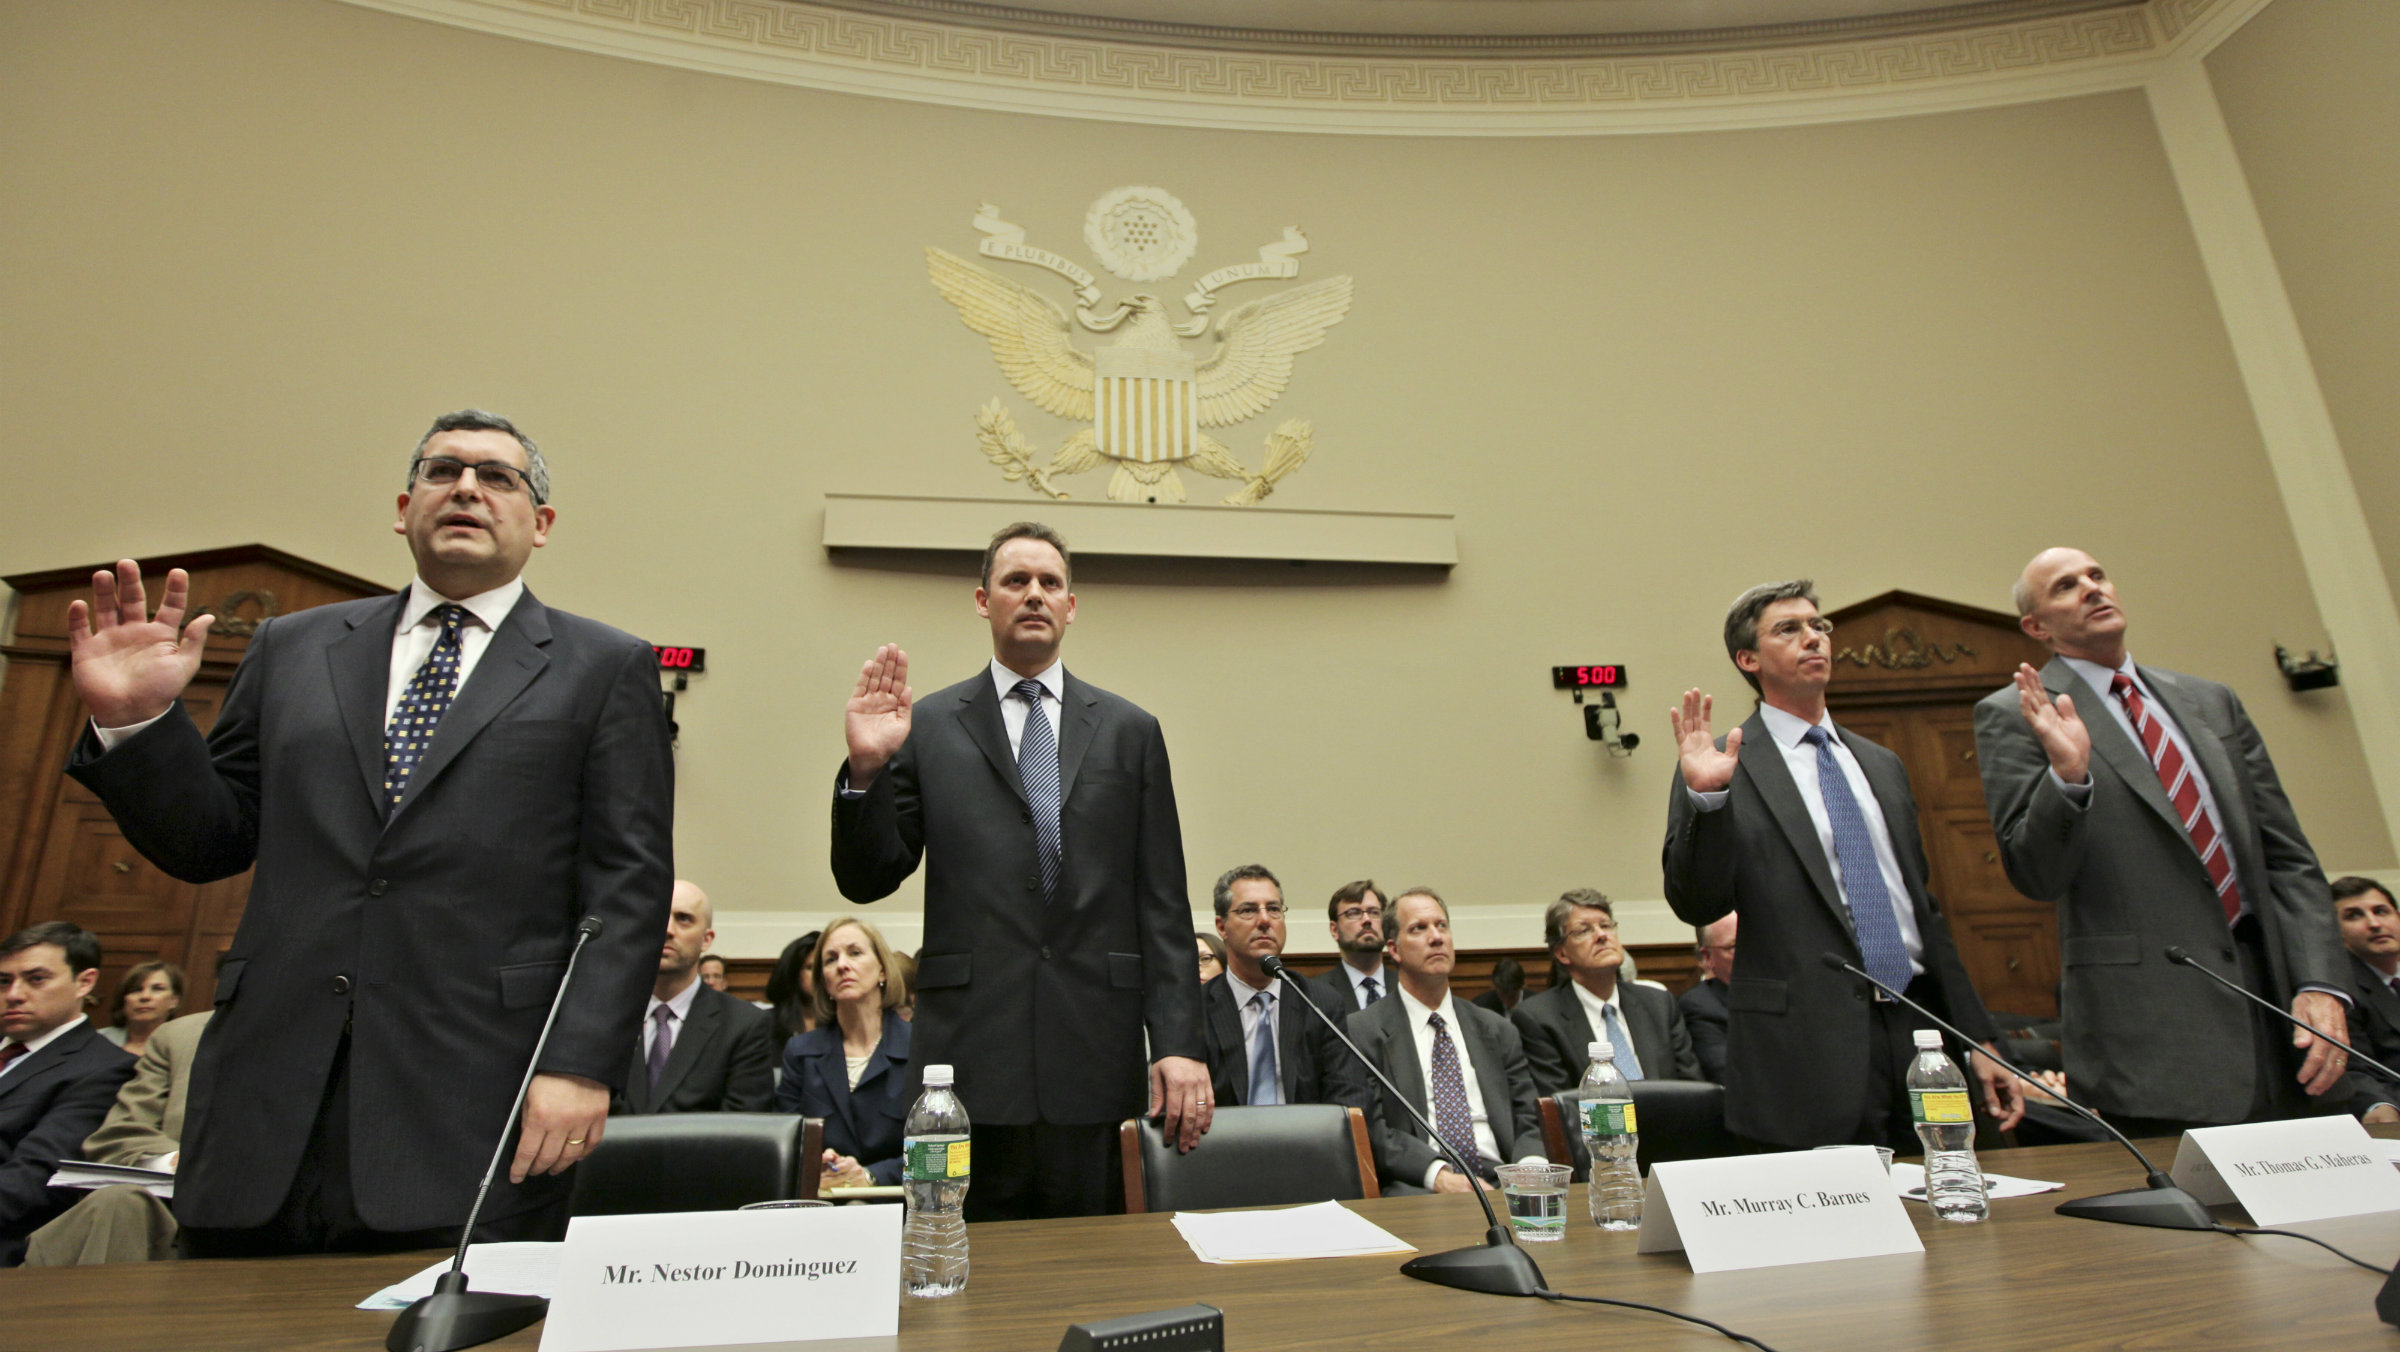 Witnesses representing the Citigroup Subprime-Related Structured Products and Risk Management operation are sworn in on Capitol Hill in Washington, Wednesday, April 7, 2010, prior to testifying before the Financial Crisis Inquiry Commission (FCIC) hearing to examine the causes of the collapse of major financial institutions caused by subprime lending.